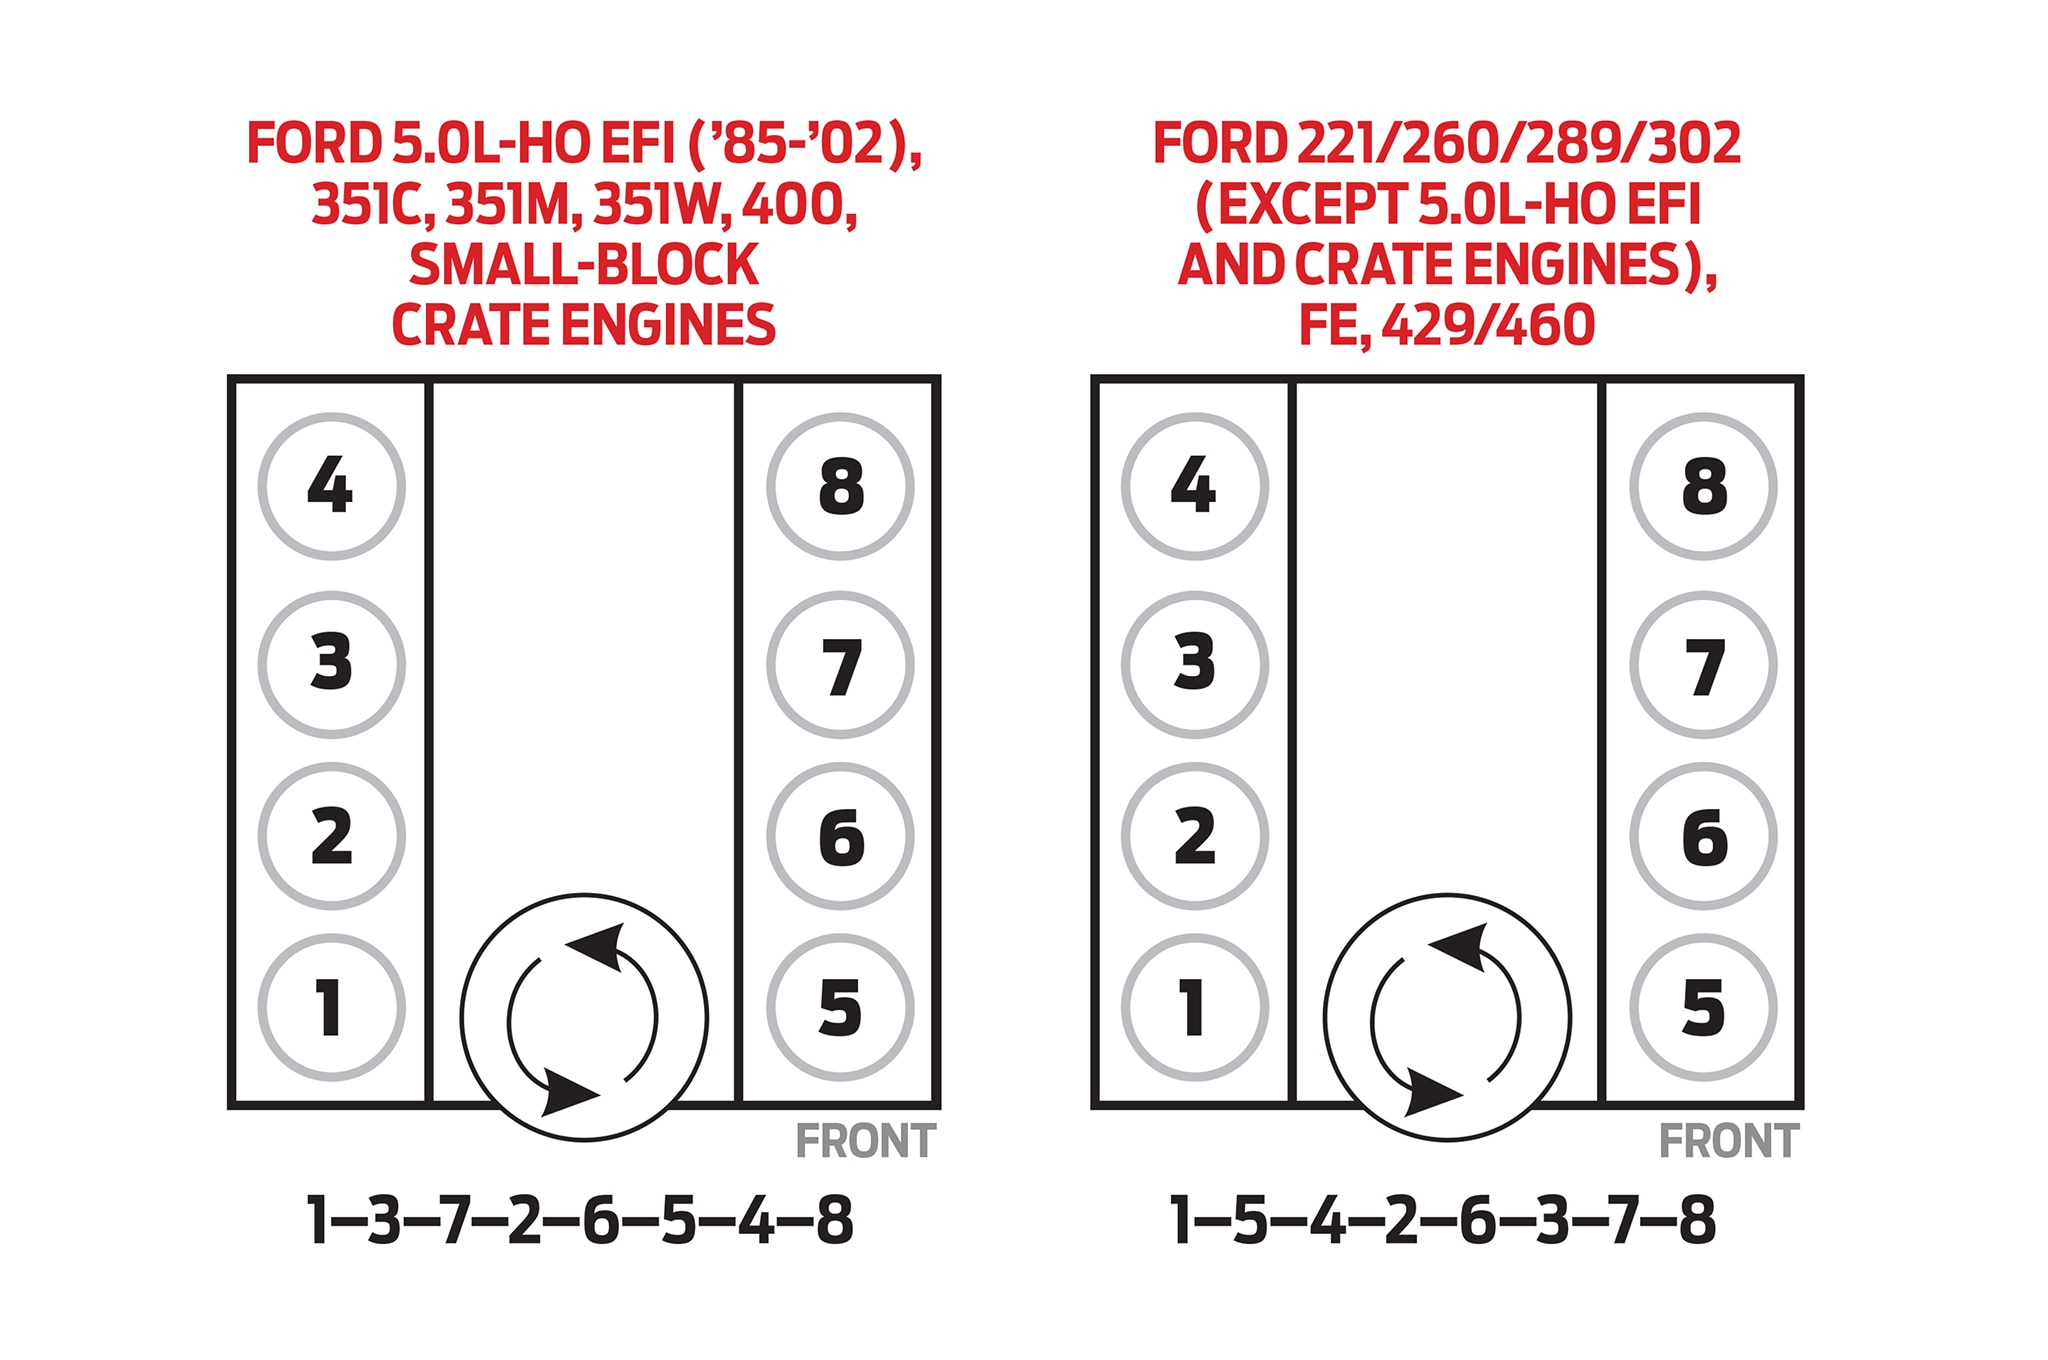 hight resolution of ford f 150 4 2 v6 engine diagram wiring library ford 289 firing order diagram on 2006 ford f 150 5 4 firing order